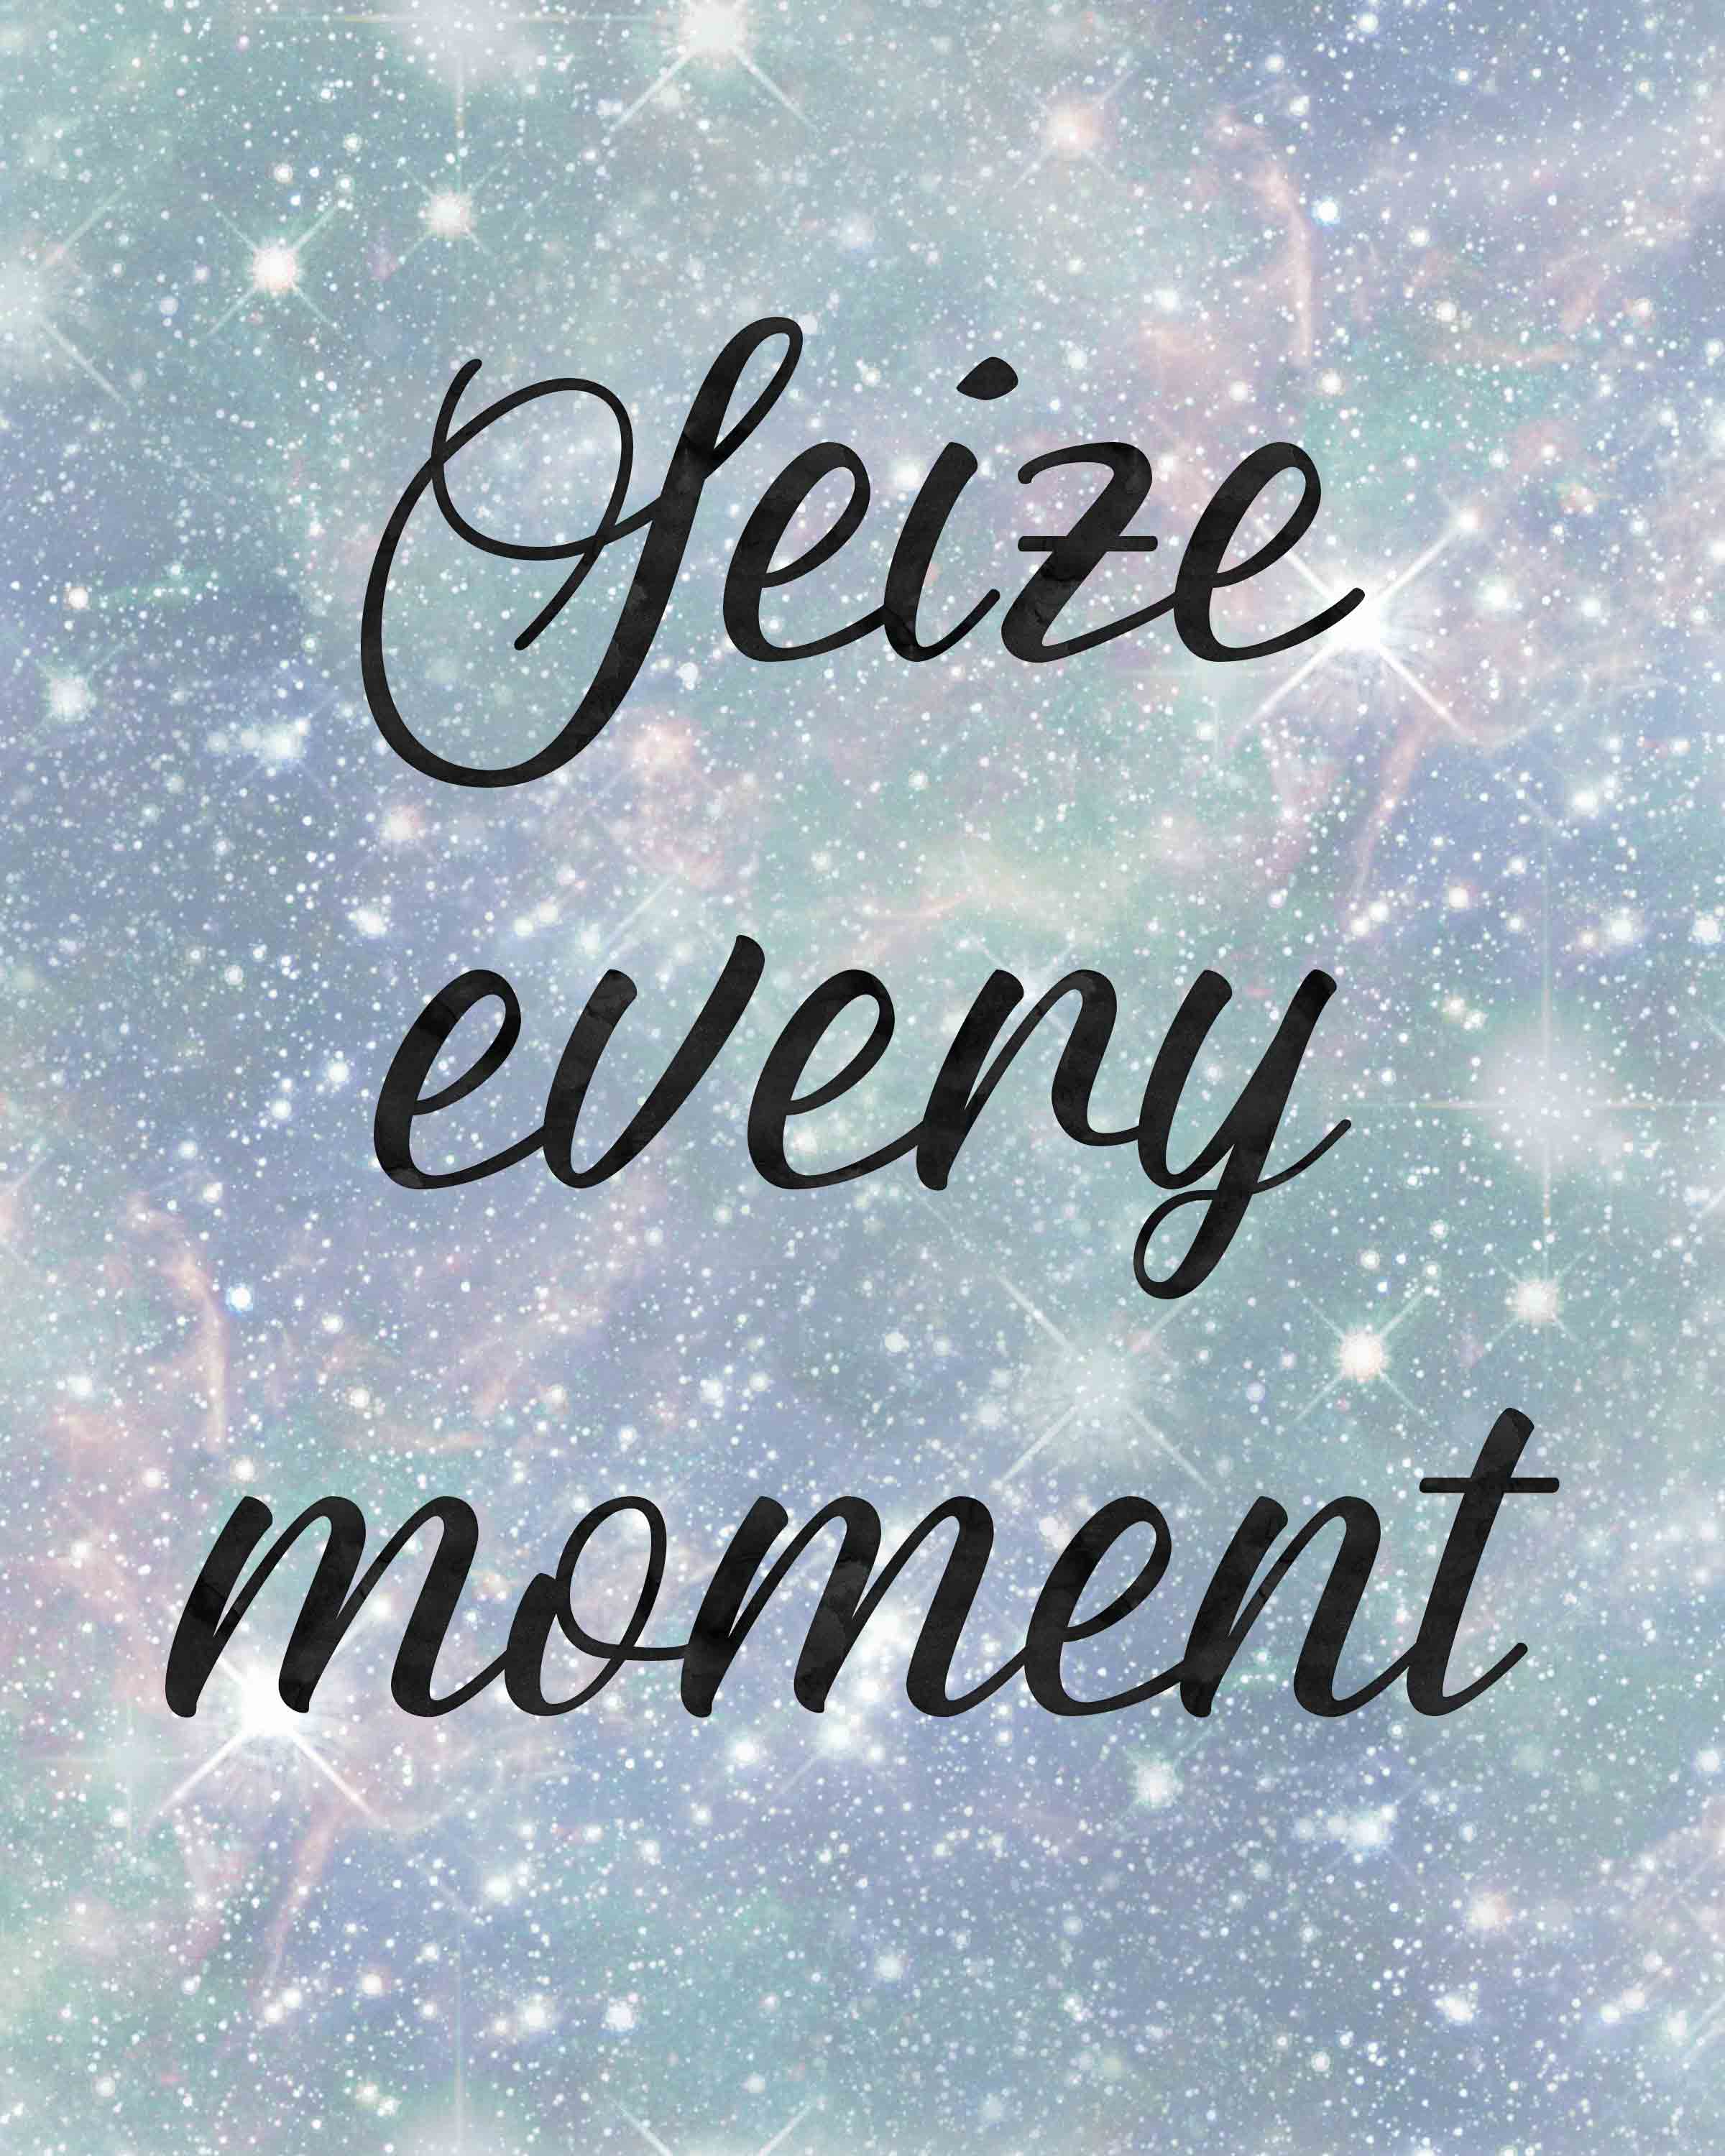 Seize every moment free printable. #free #freeprintable #inspiration